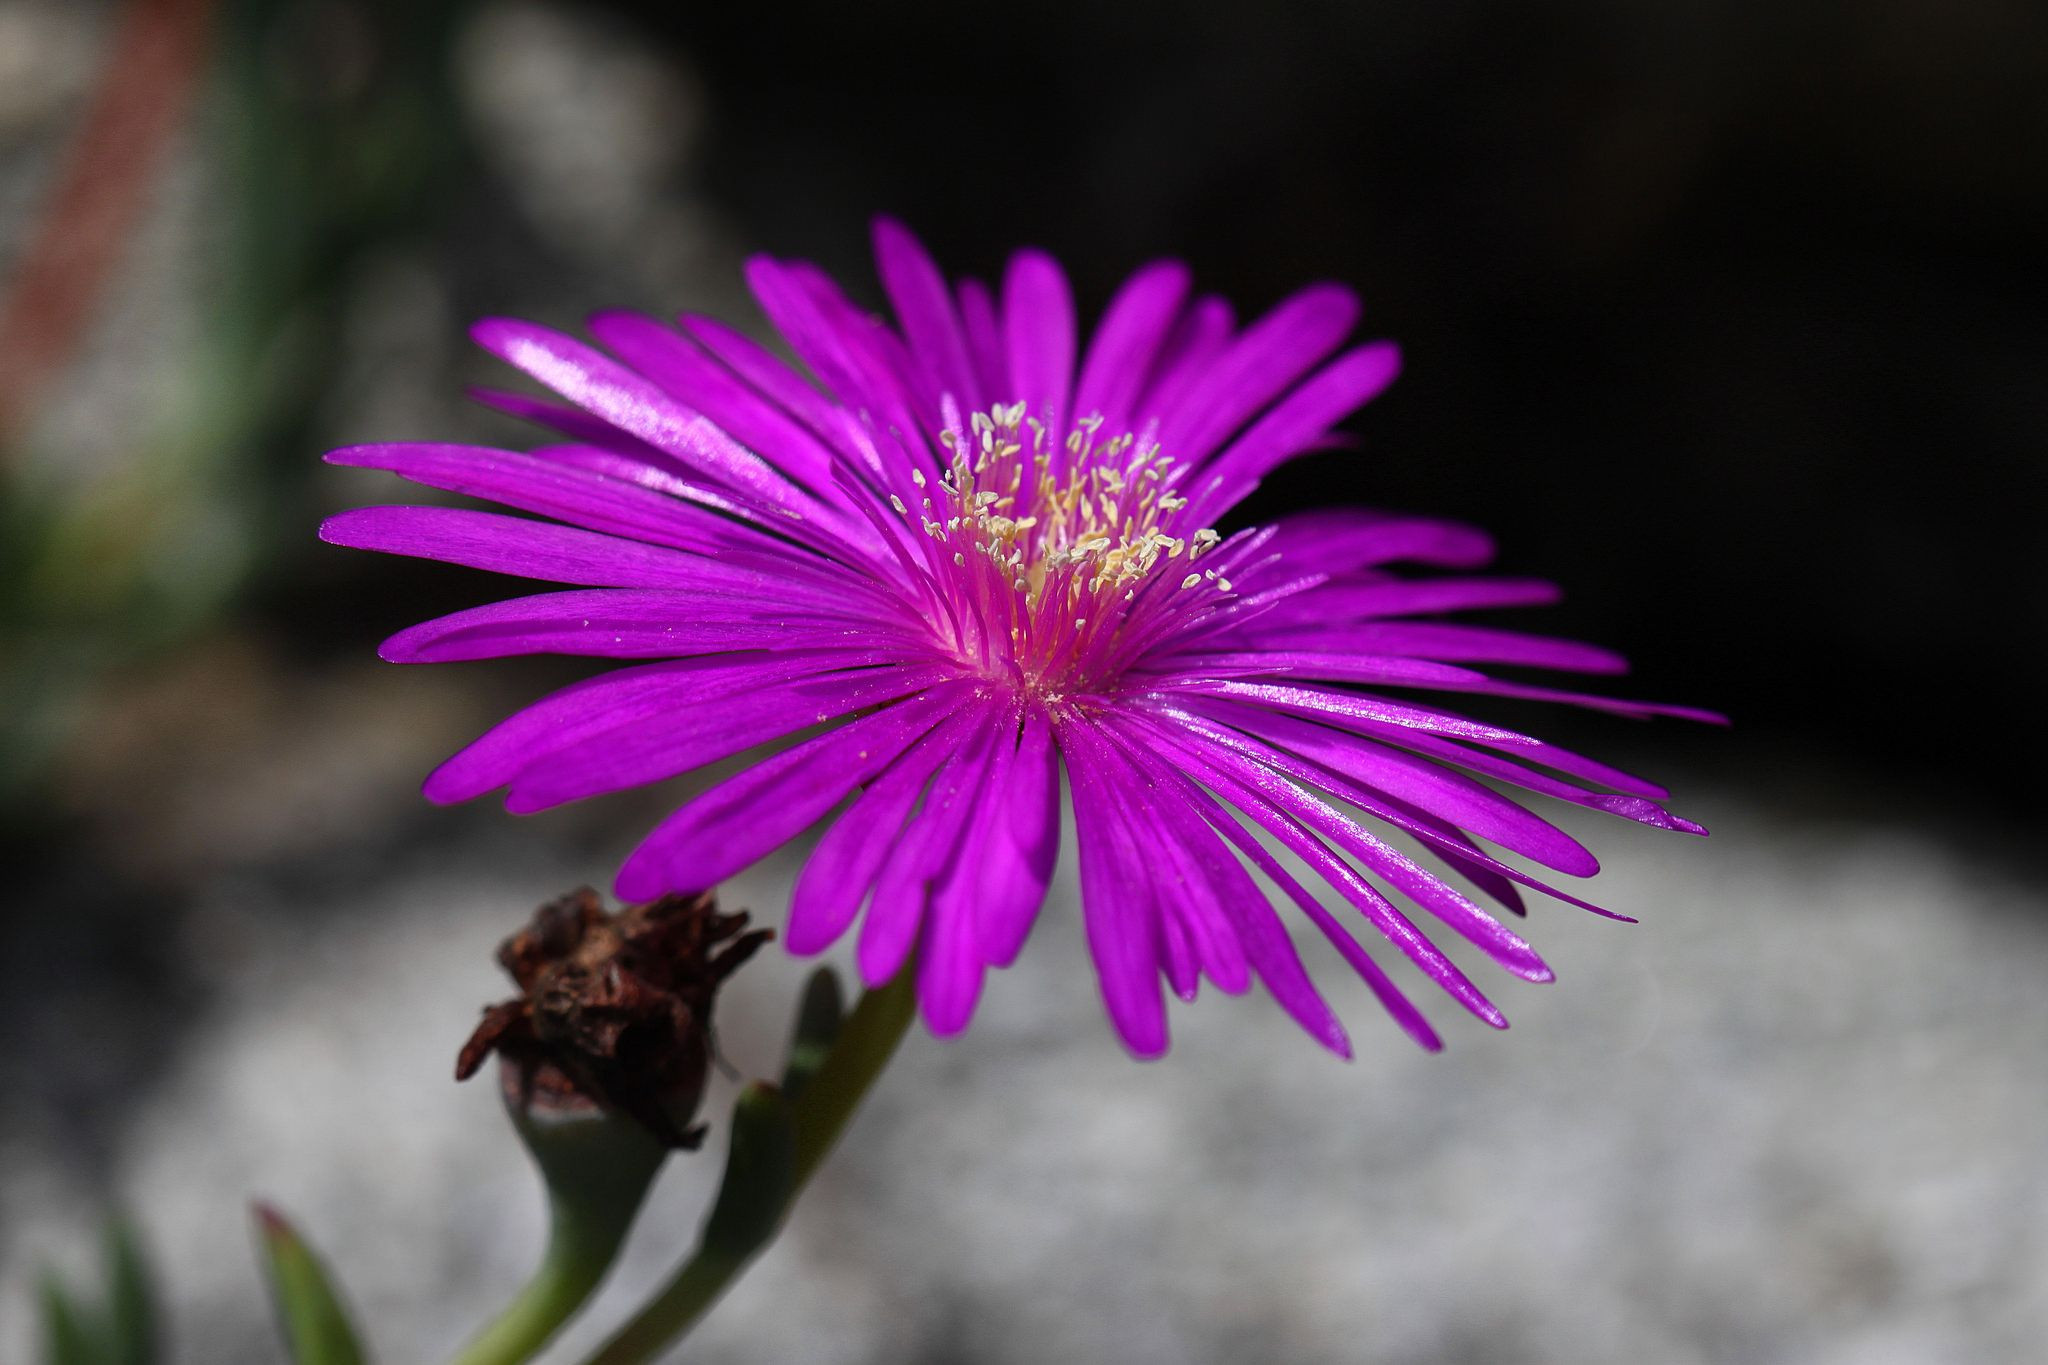 Ice Plant Lampranthus spectabilis [Family Aizoaceae] Flickr Sharing